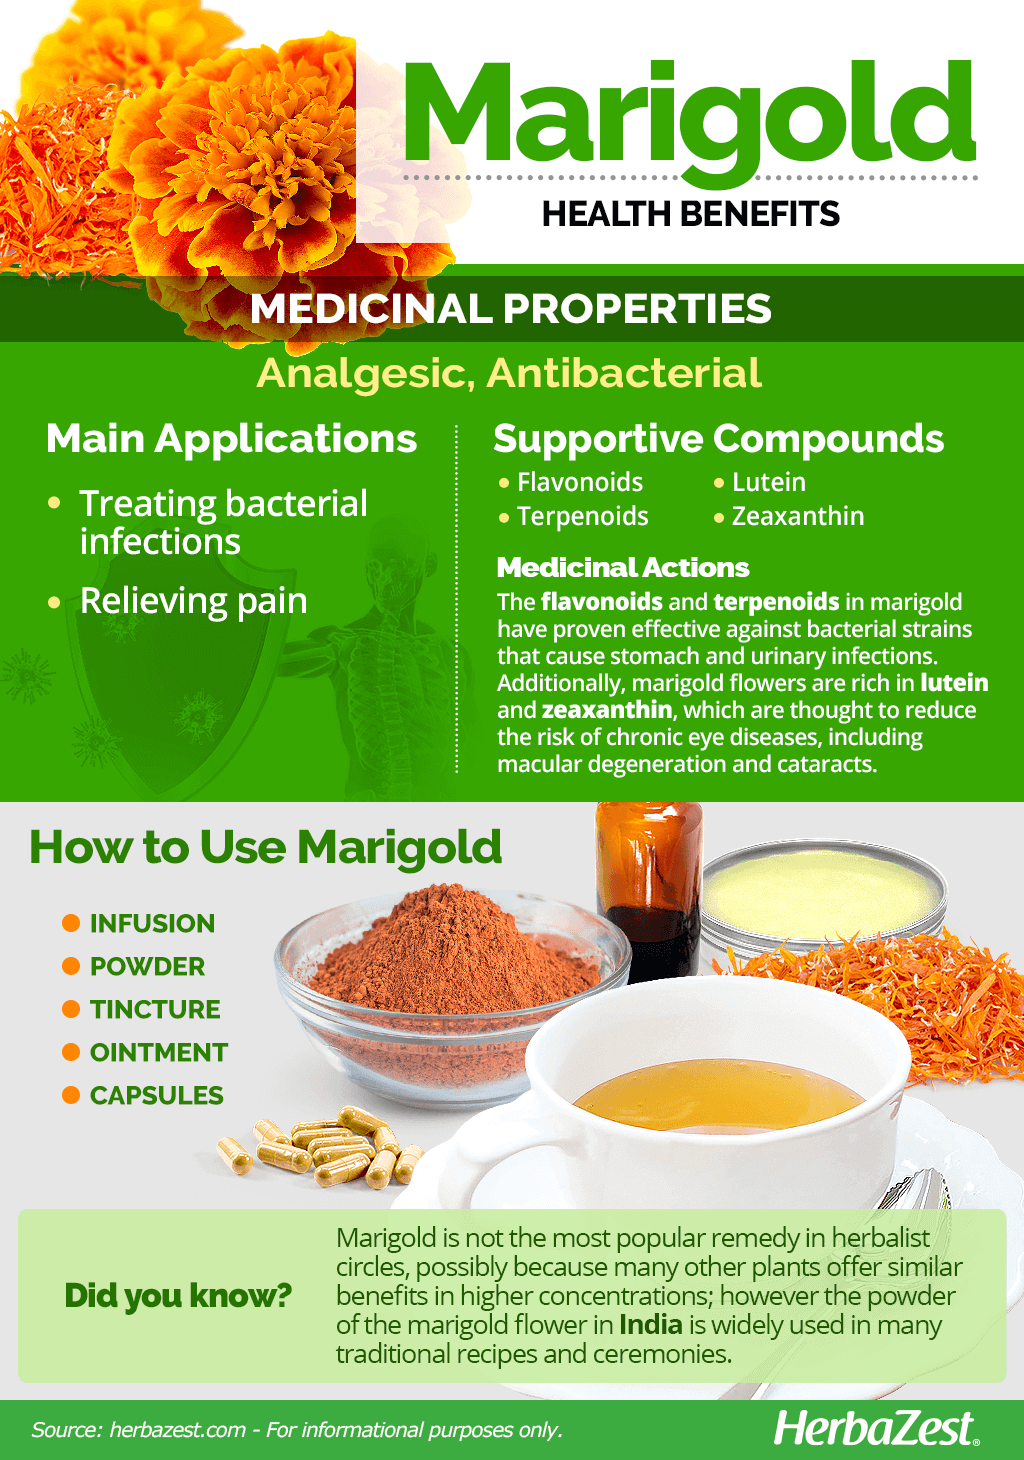 All About Marigold